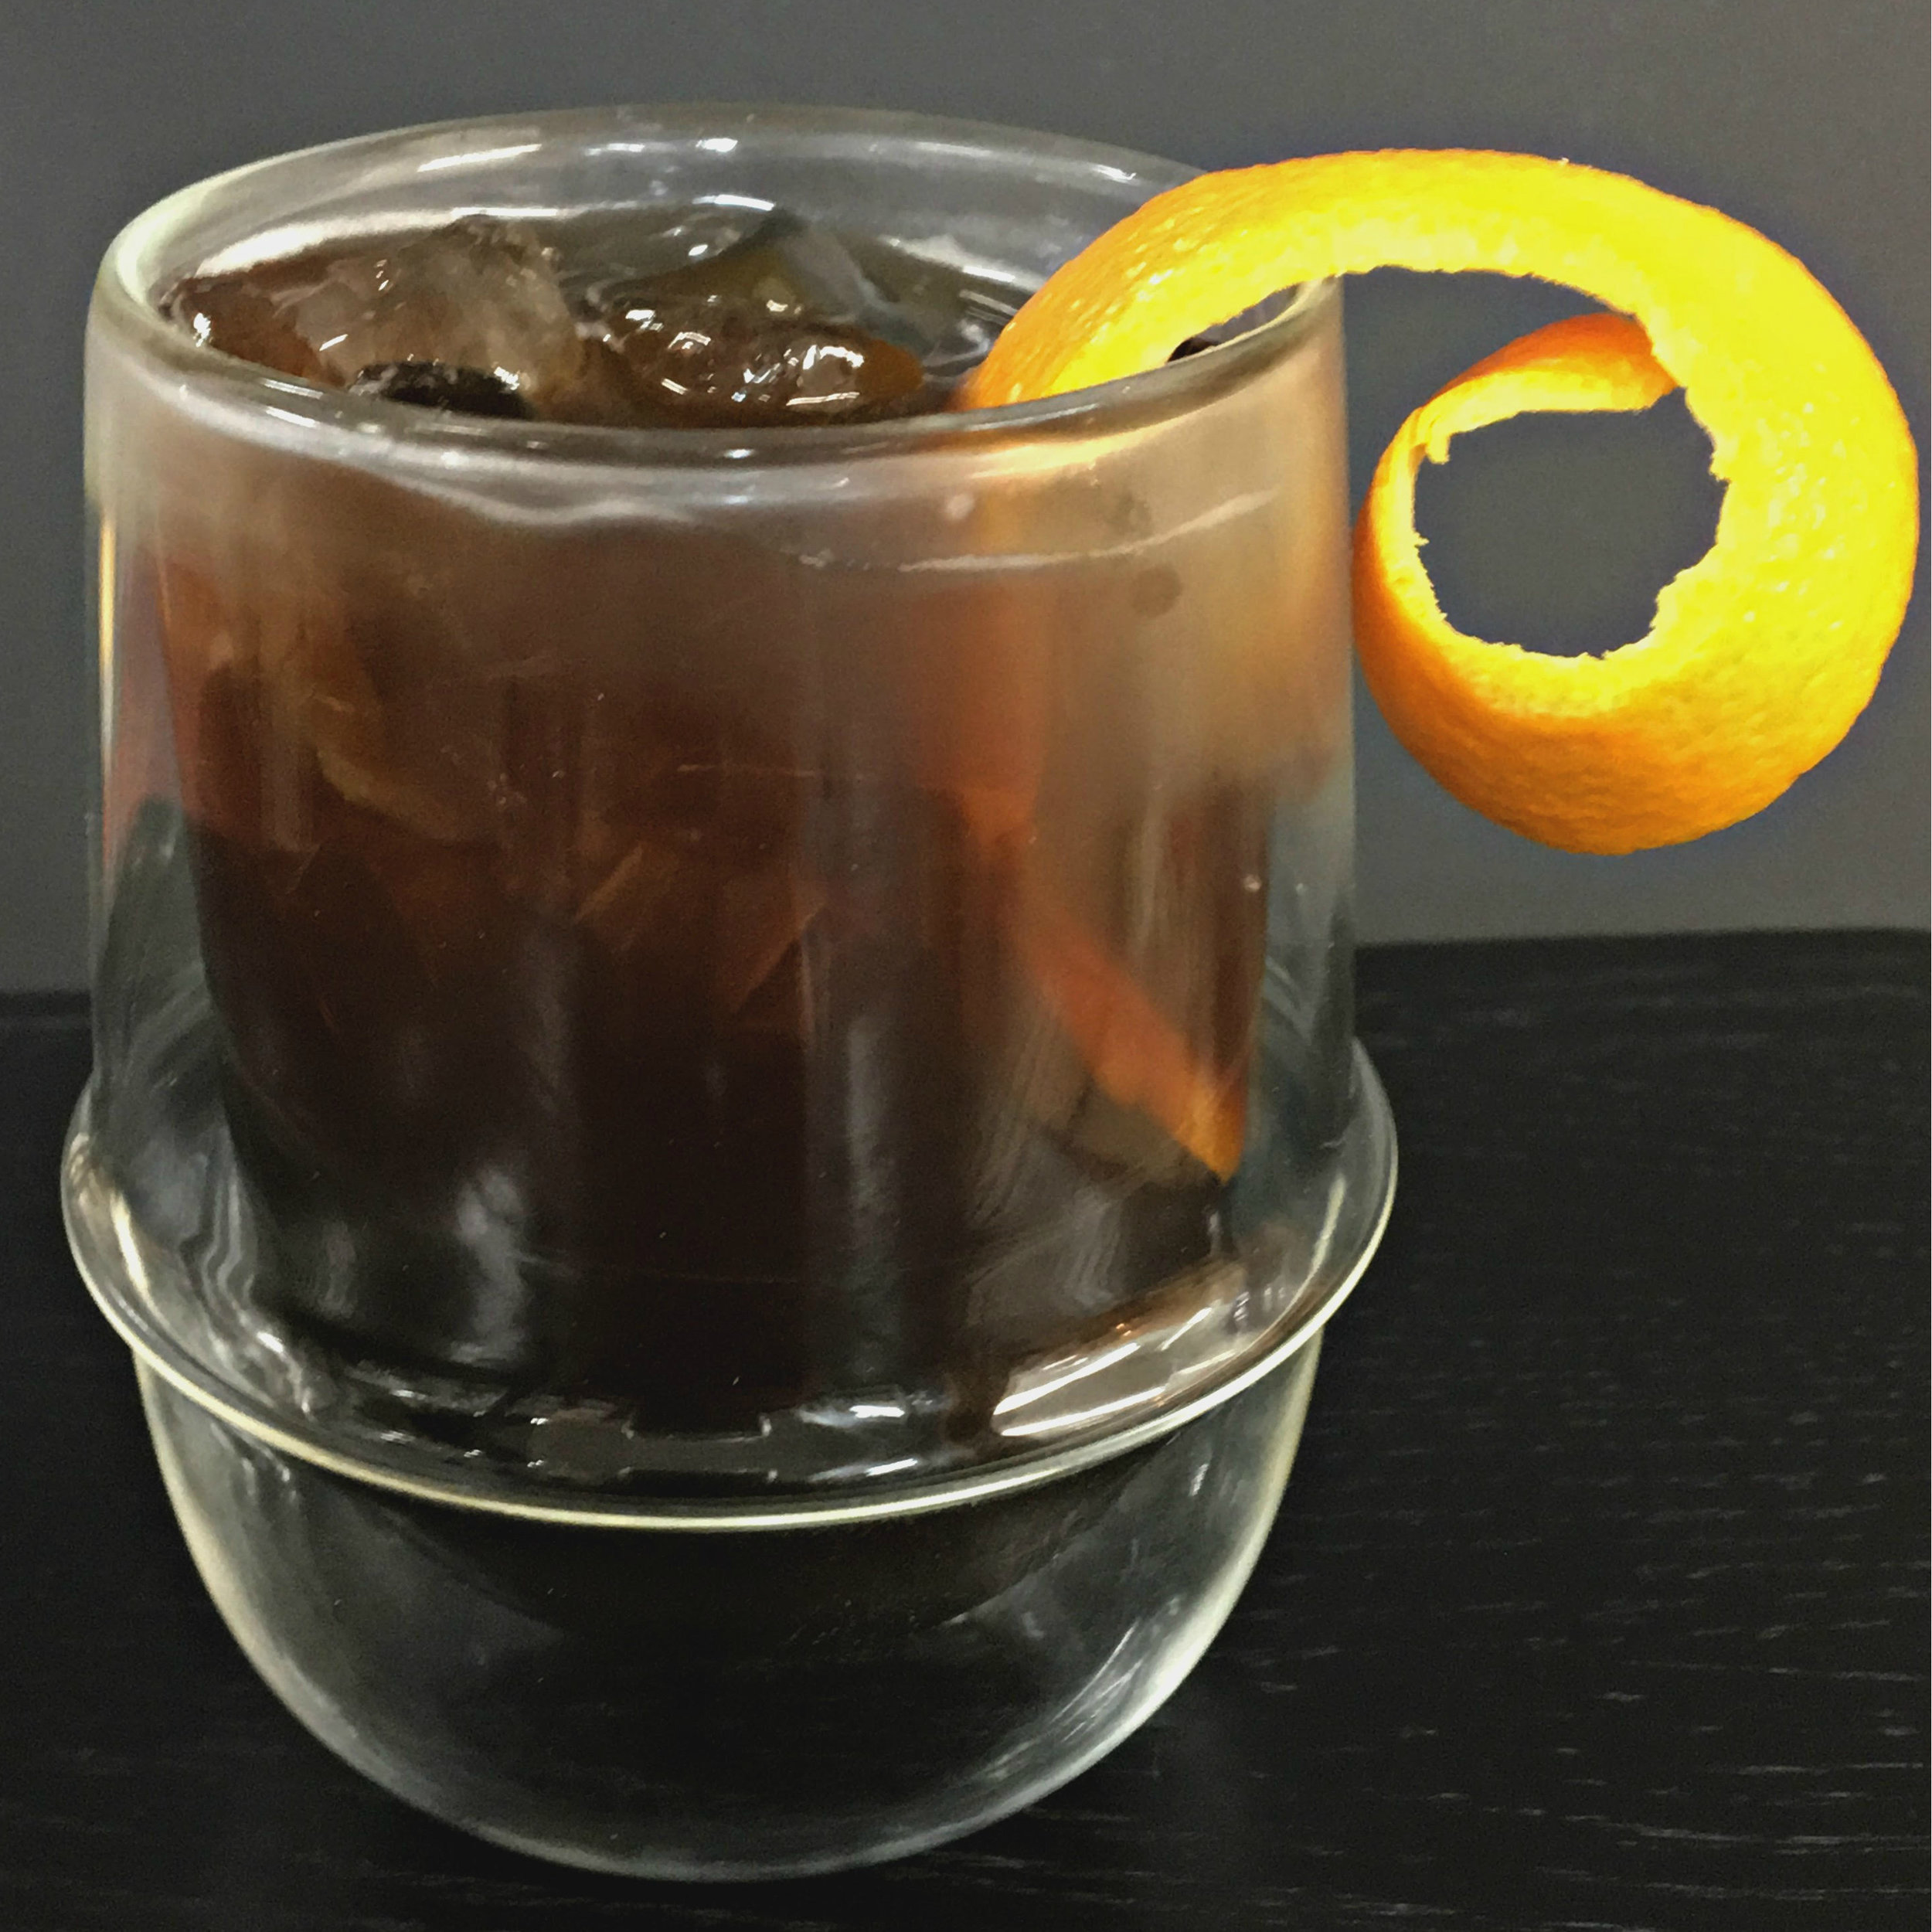 Dragon Heart Strings    1½ oz  Aquavit  ½ oz  Pearl Beverage Co.       Dancing Dragon Tea Syrup     2 dashes  Pitch Dark Cacao Bitters from Portland Bitters Project Pour over ice into a rocks glass Top with soda water Garnish with a twist of orange